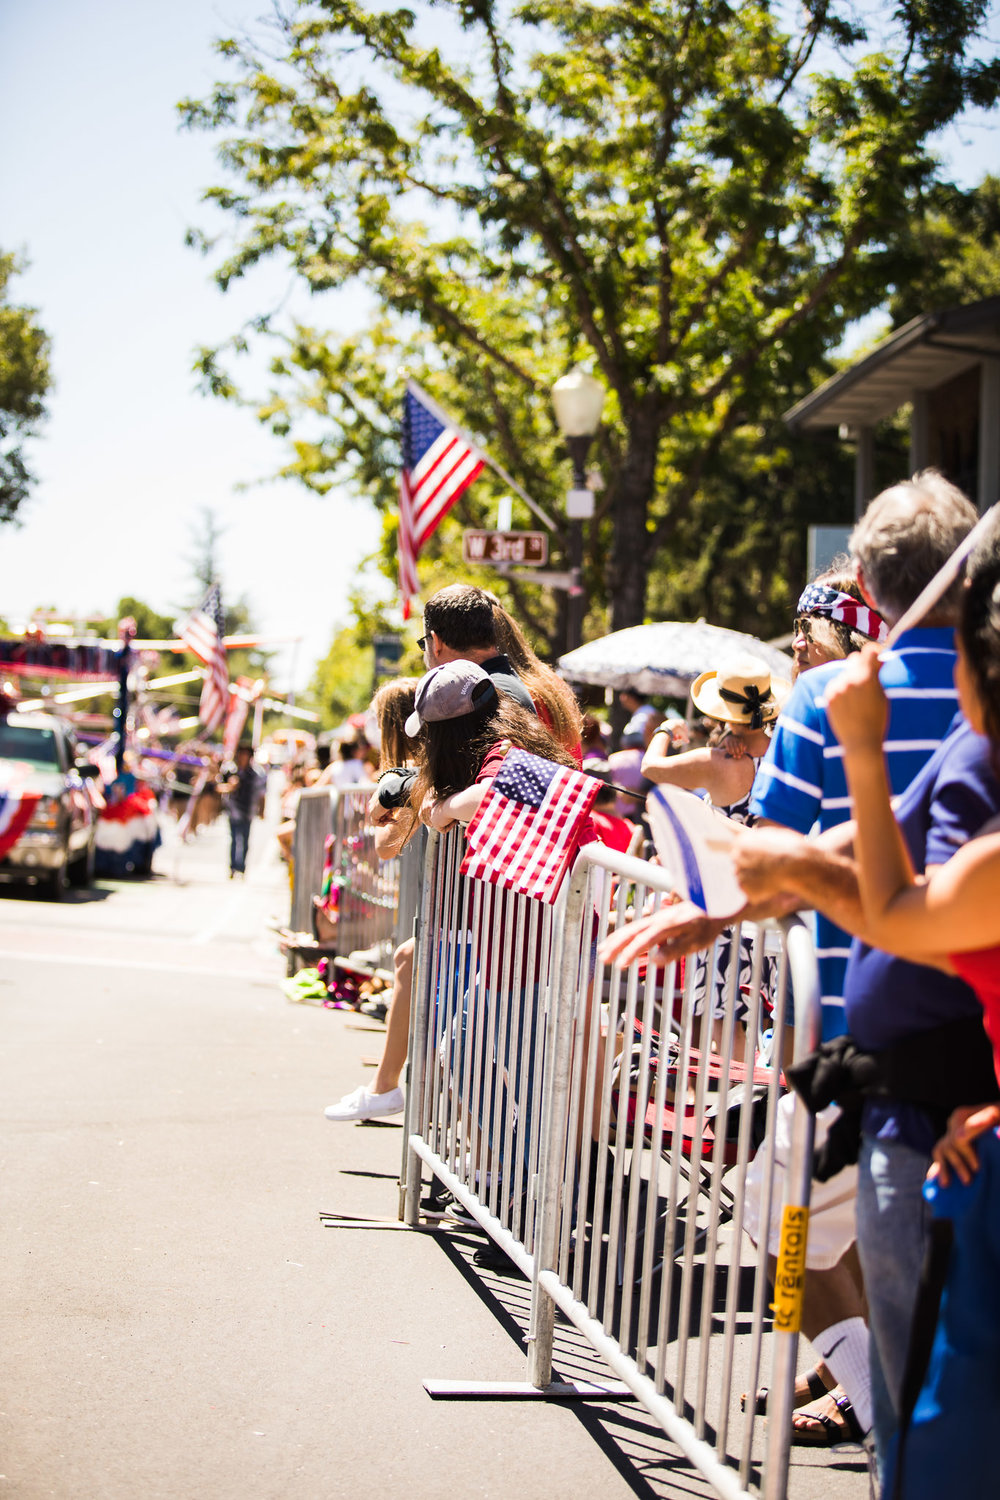 Archer_Inspired_Photography_Morgan_Hill_California_4th_of_july_parade-168.jpg